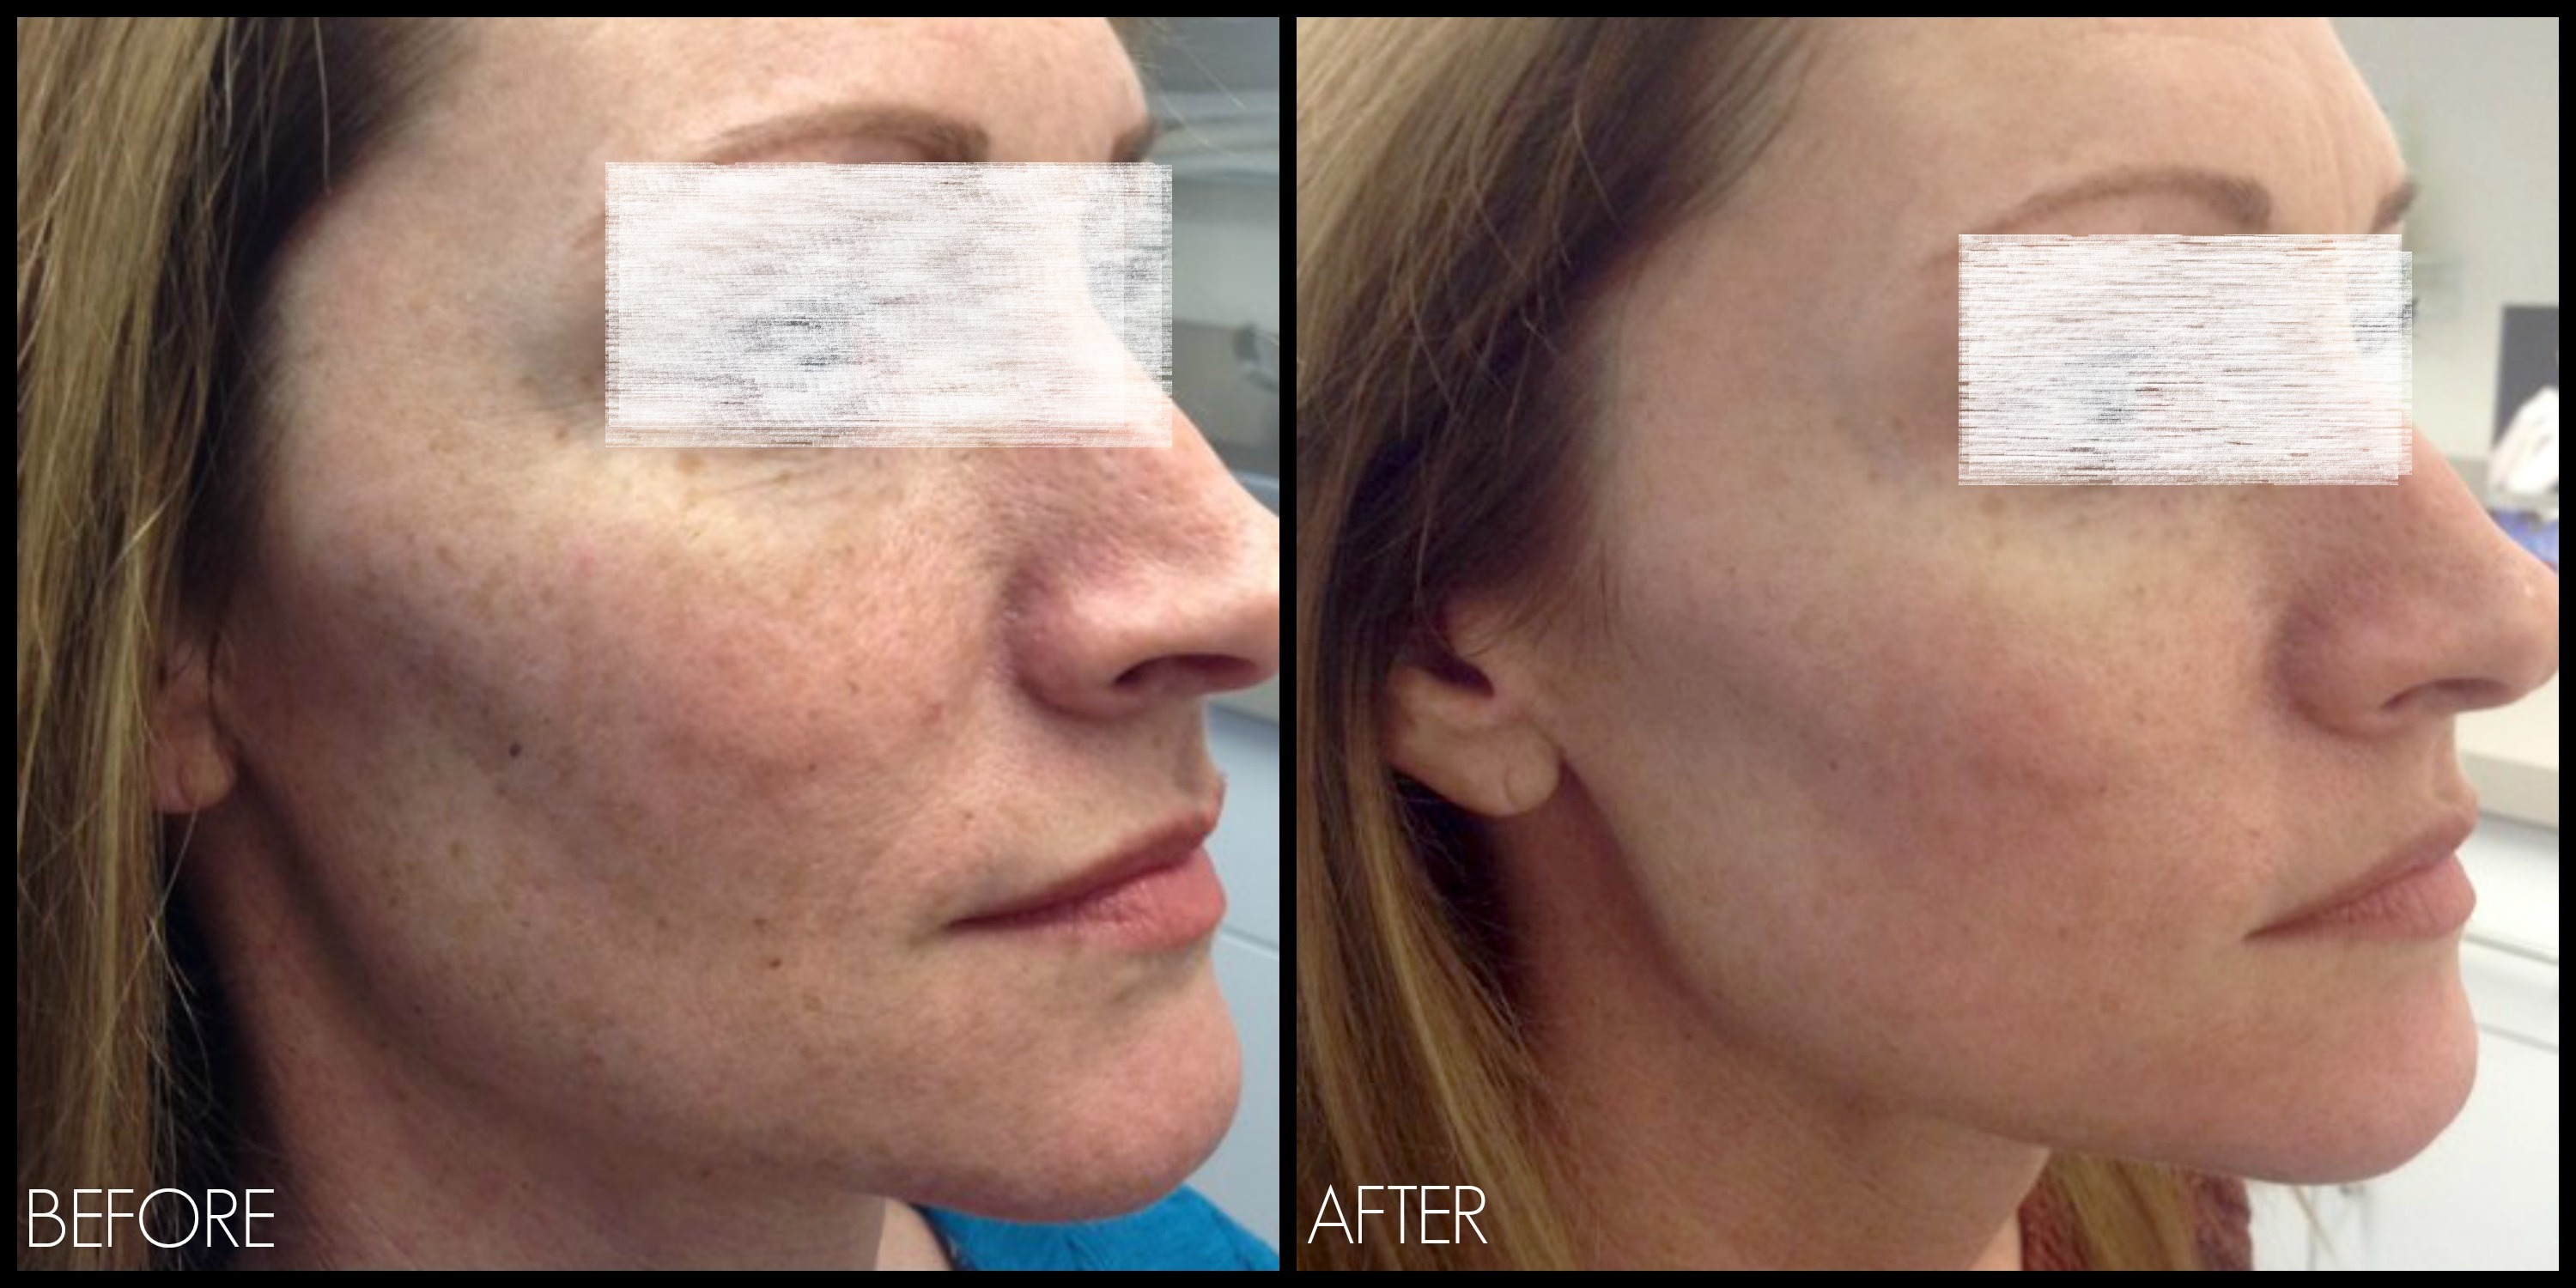 Freckles and Blemishes Treatment in Abu Dhabi